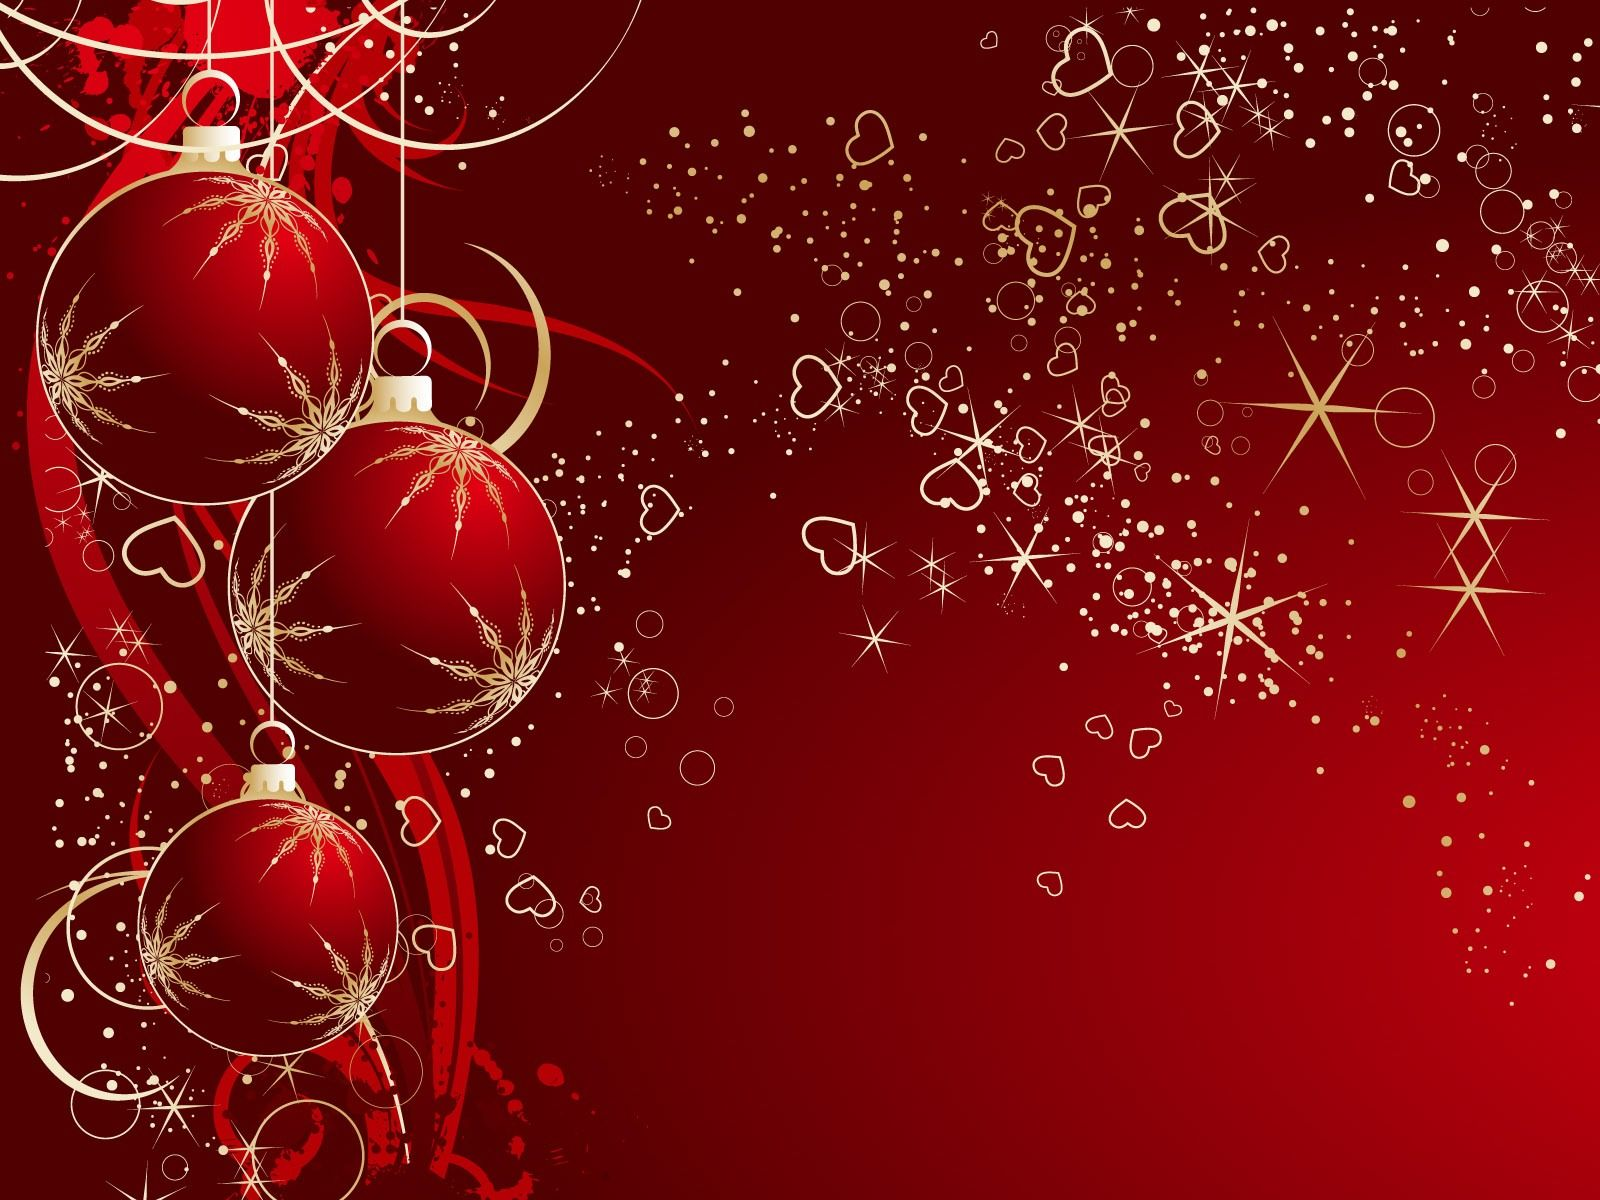 Christmas-red-balls-and-hearts-wallpaper-wpc5803479